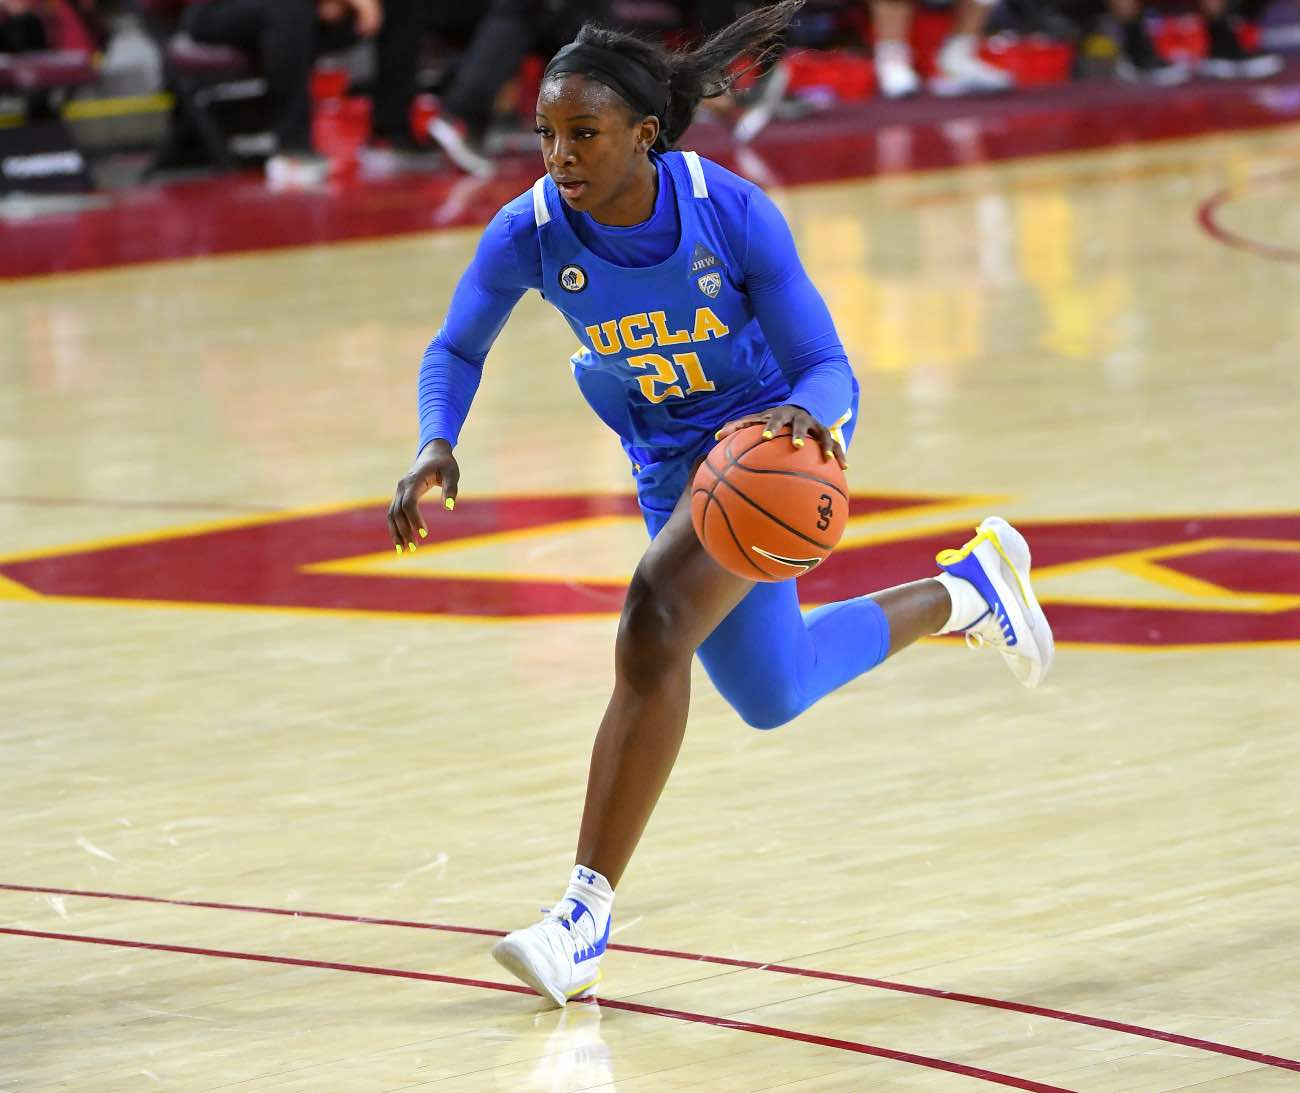 LOS ANGELES, CA - DECEMBER 13: Michaela Onyenwere #21 of the UCLA Bruins takes the ball down court during the game against the USC Trojans at Galen Center on December 13, 2020 in Los Angeles, California. (Photo by Jayne Kamin-Oncea/Getty Images)